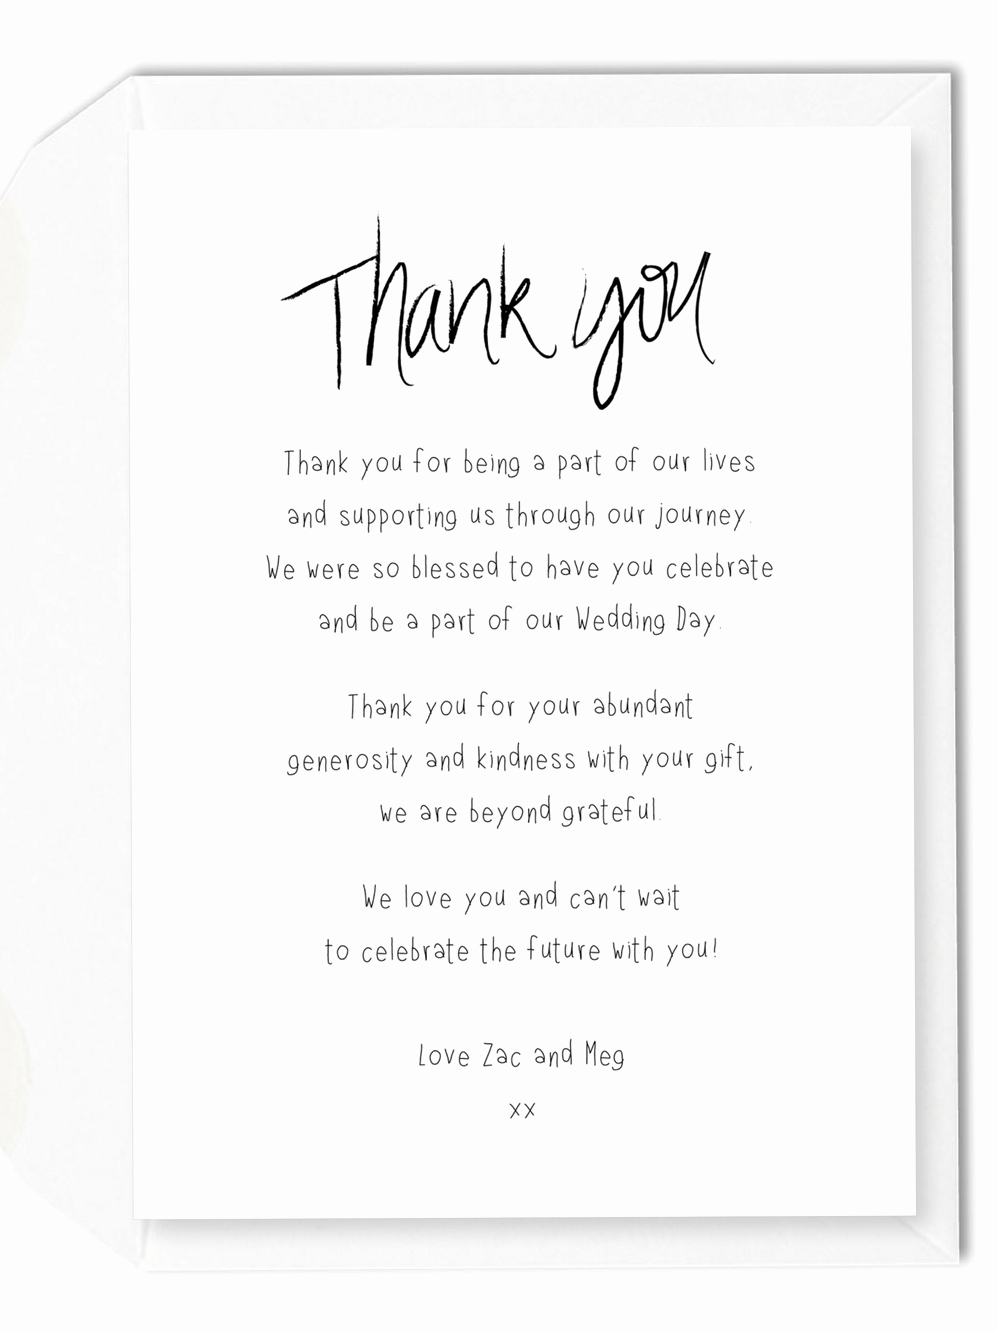 Words for Thank You Card Inspirational 5 Wording Ideas for Your Wedding Thank You Cards – for the